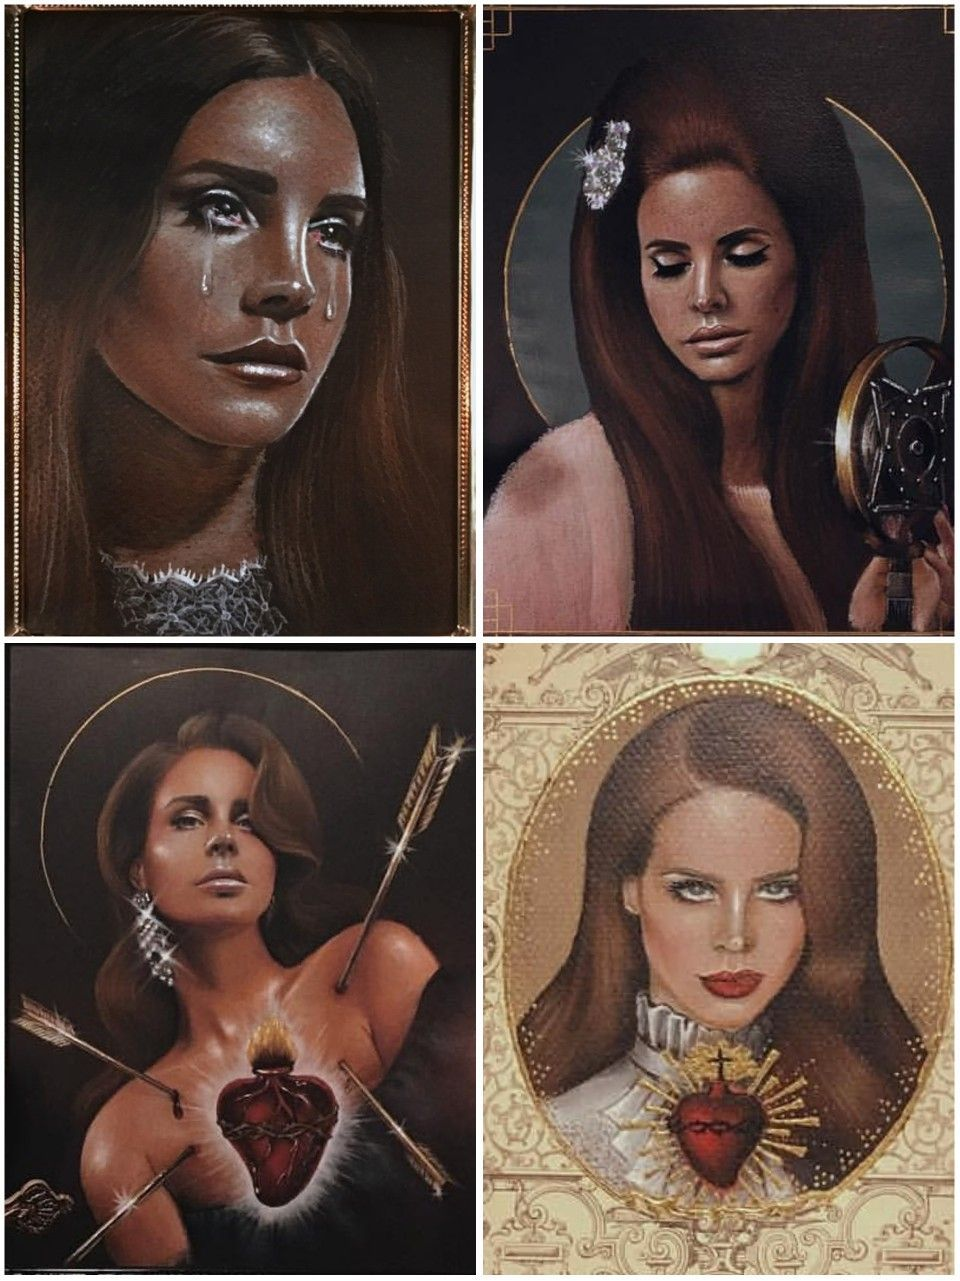 Pin by anthony padilla on Art in 2020 Lana del rey art